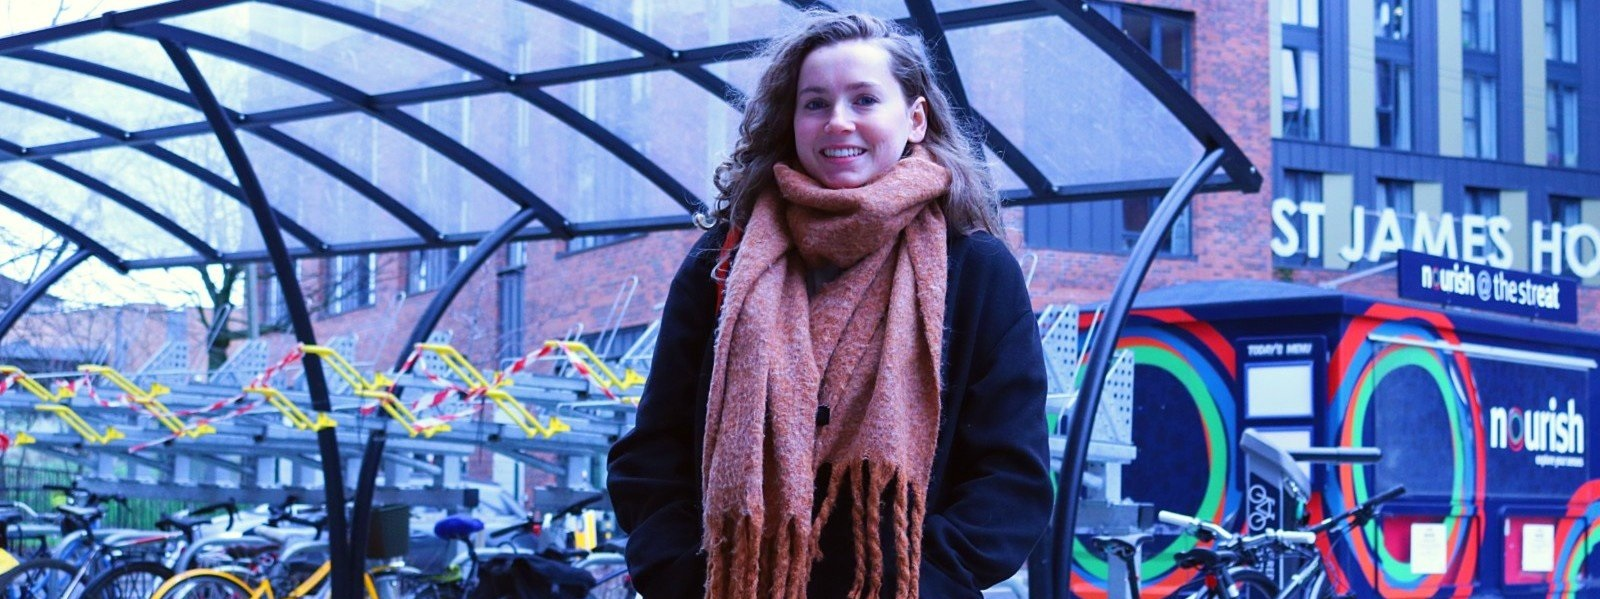 Sarah Finlay MSc International Relations student 1600x600